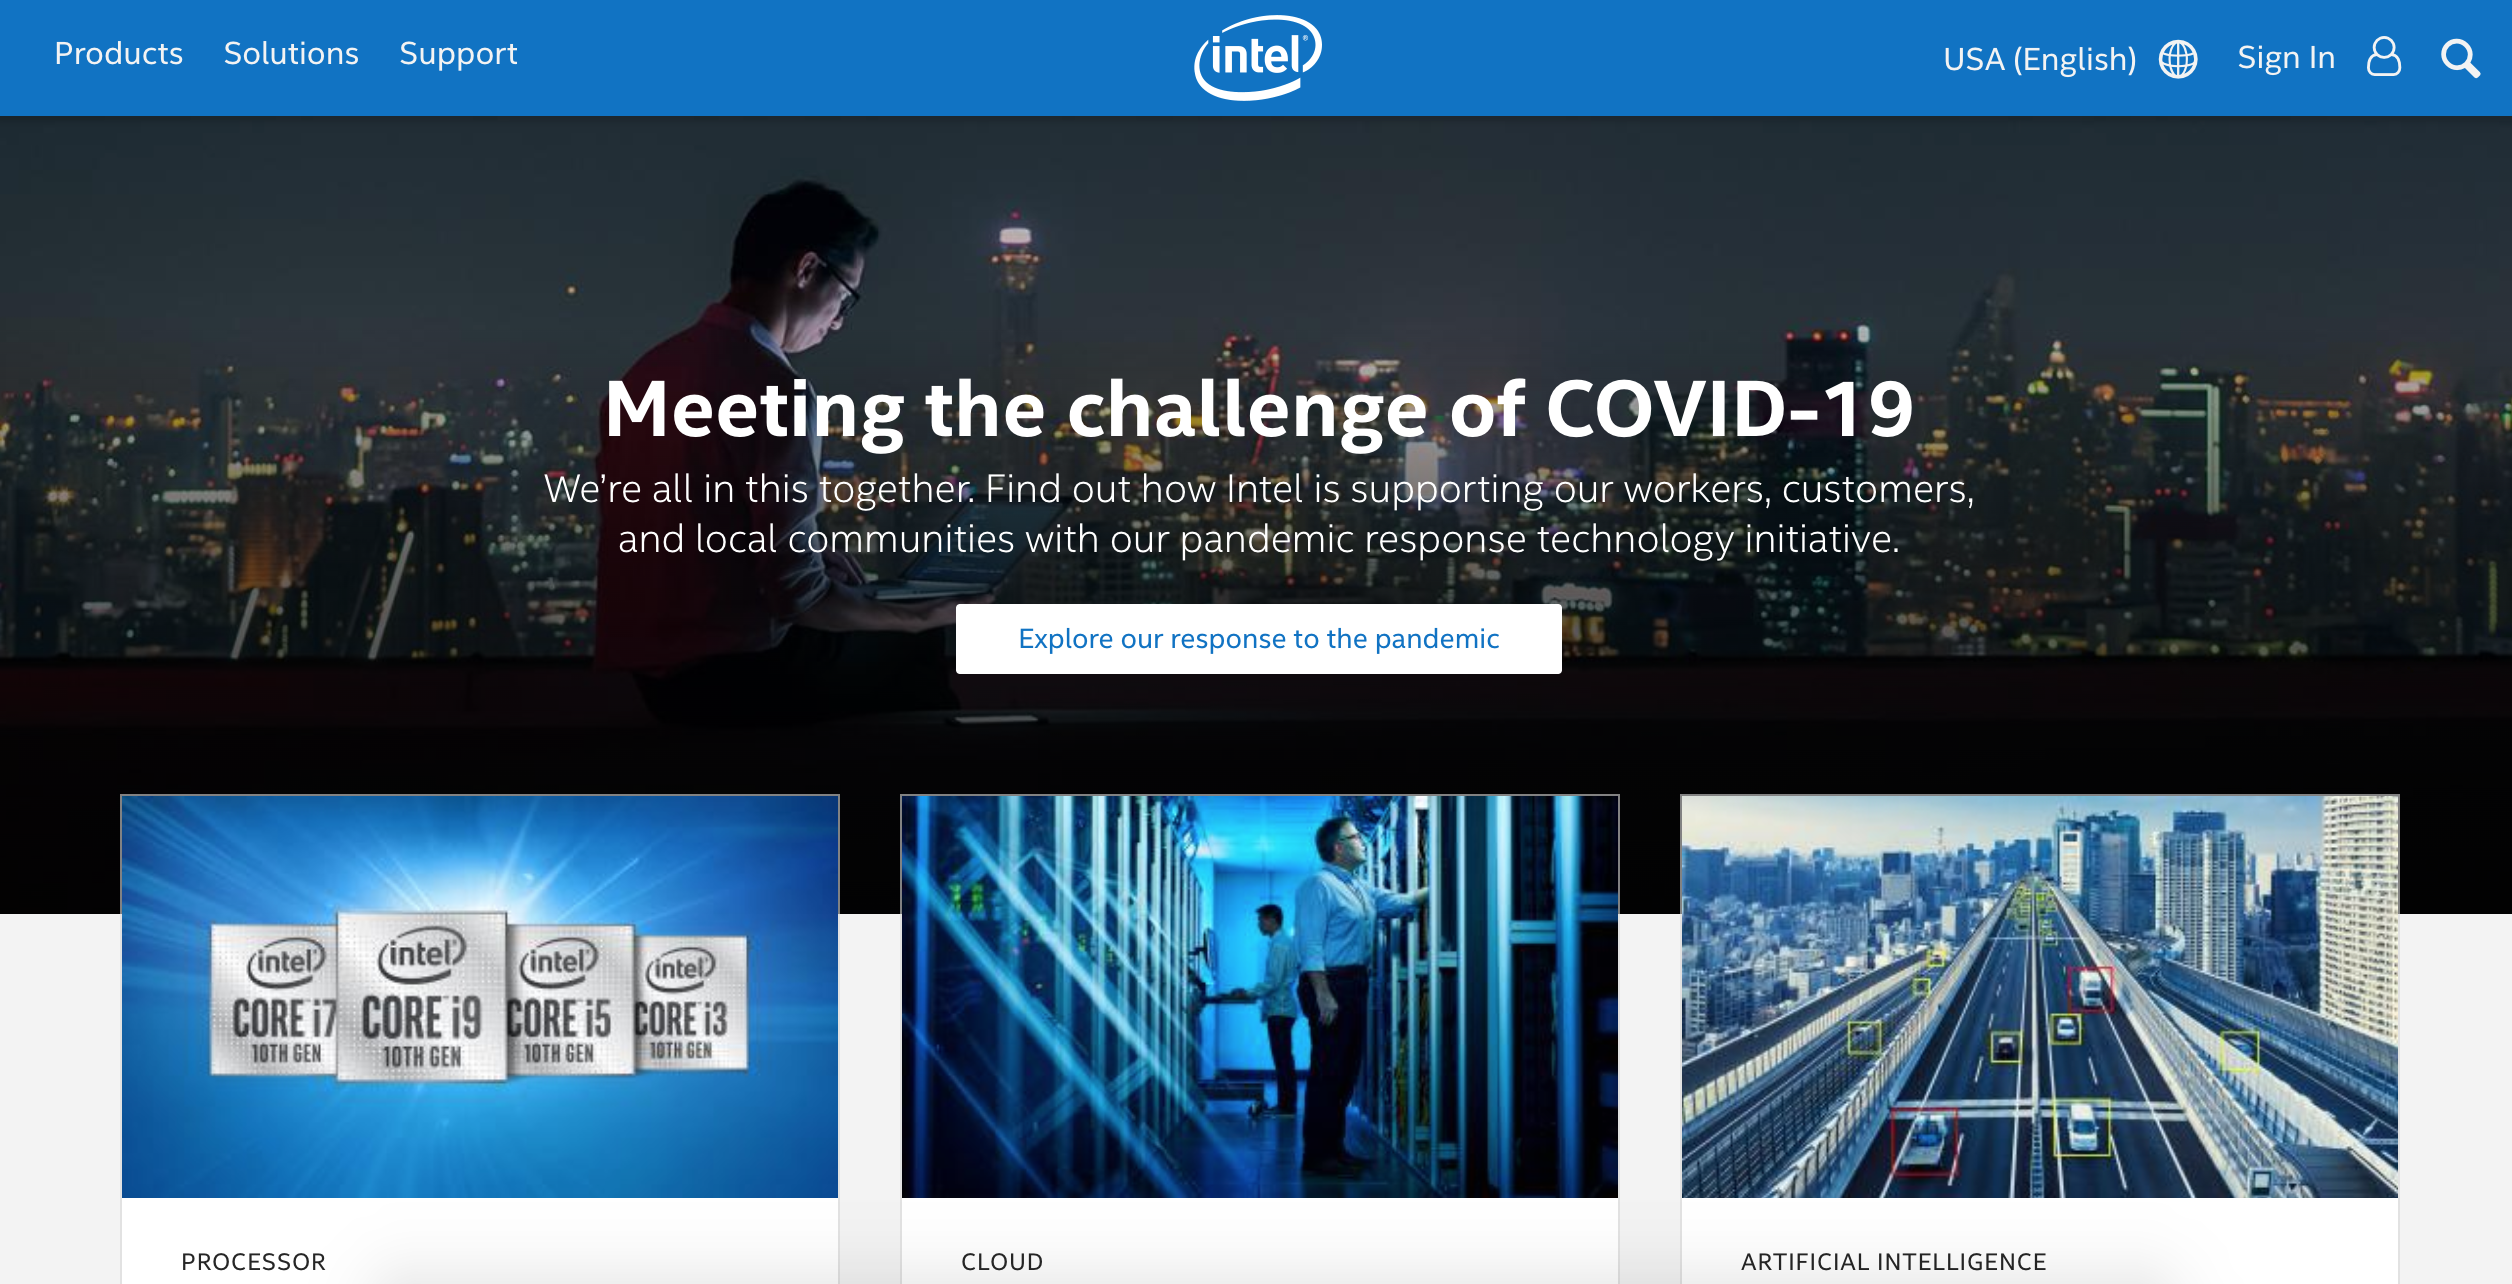 Intel website look like today